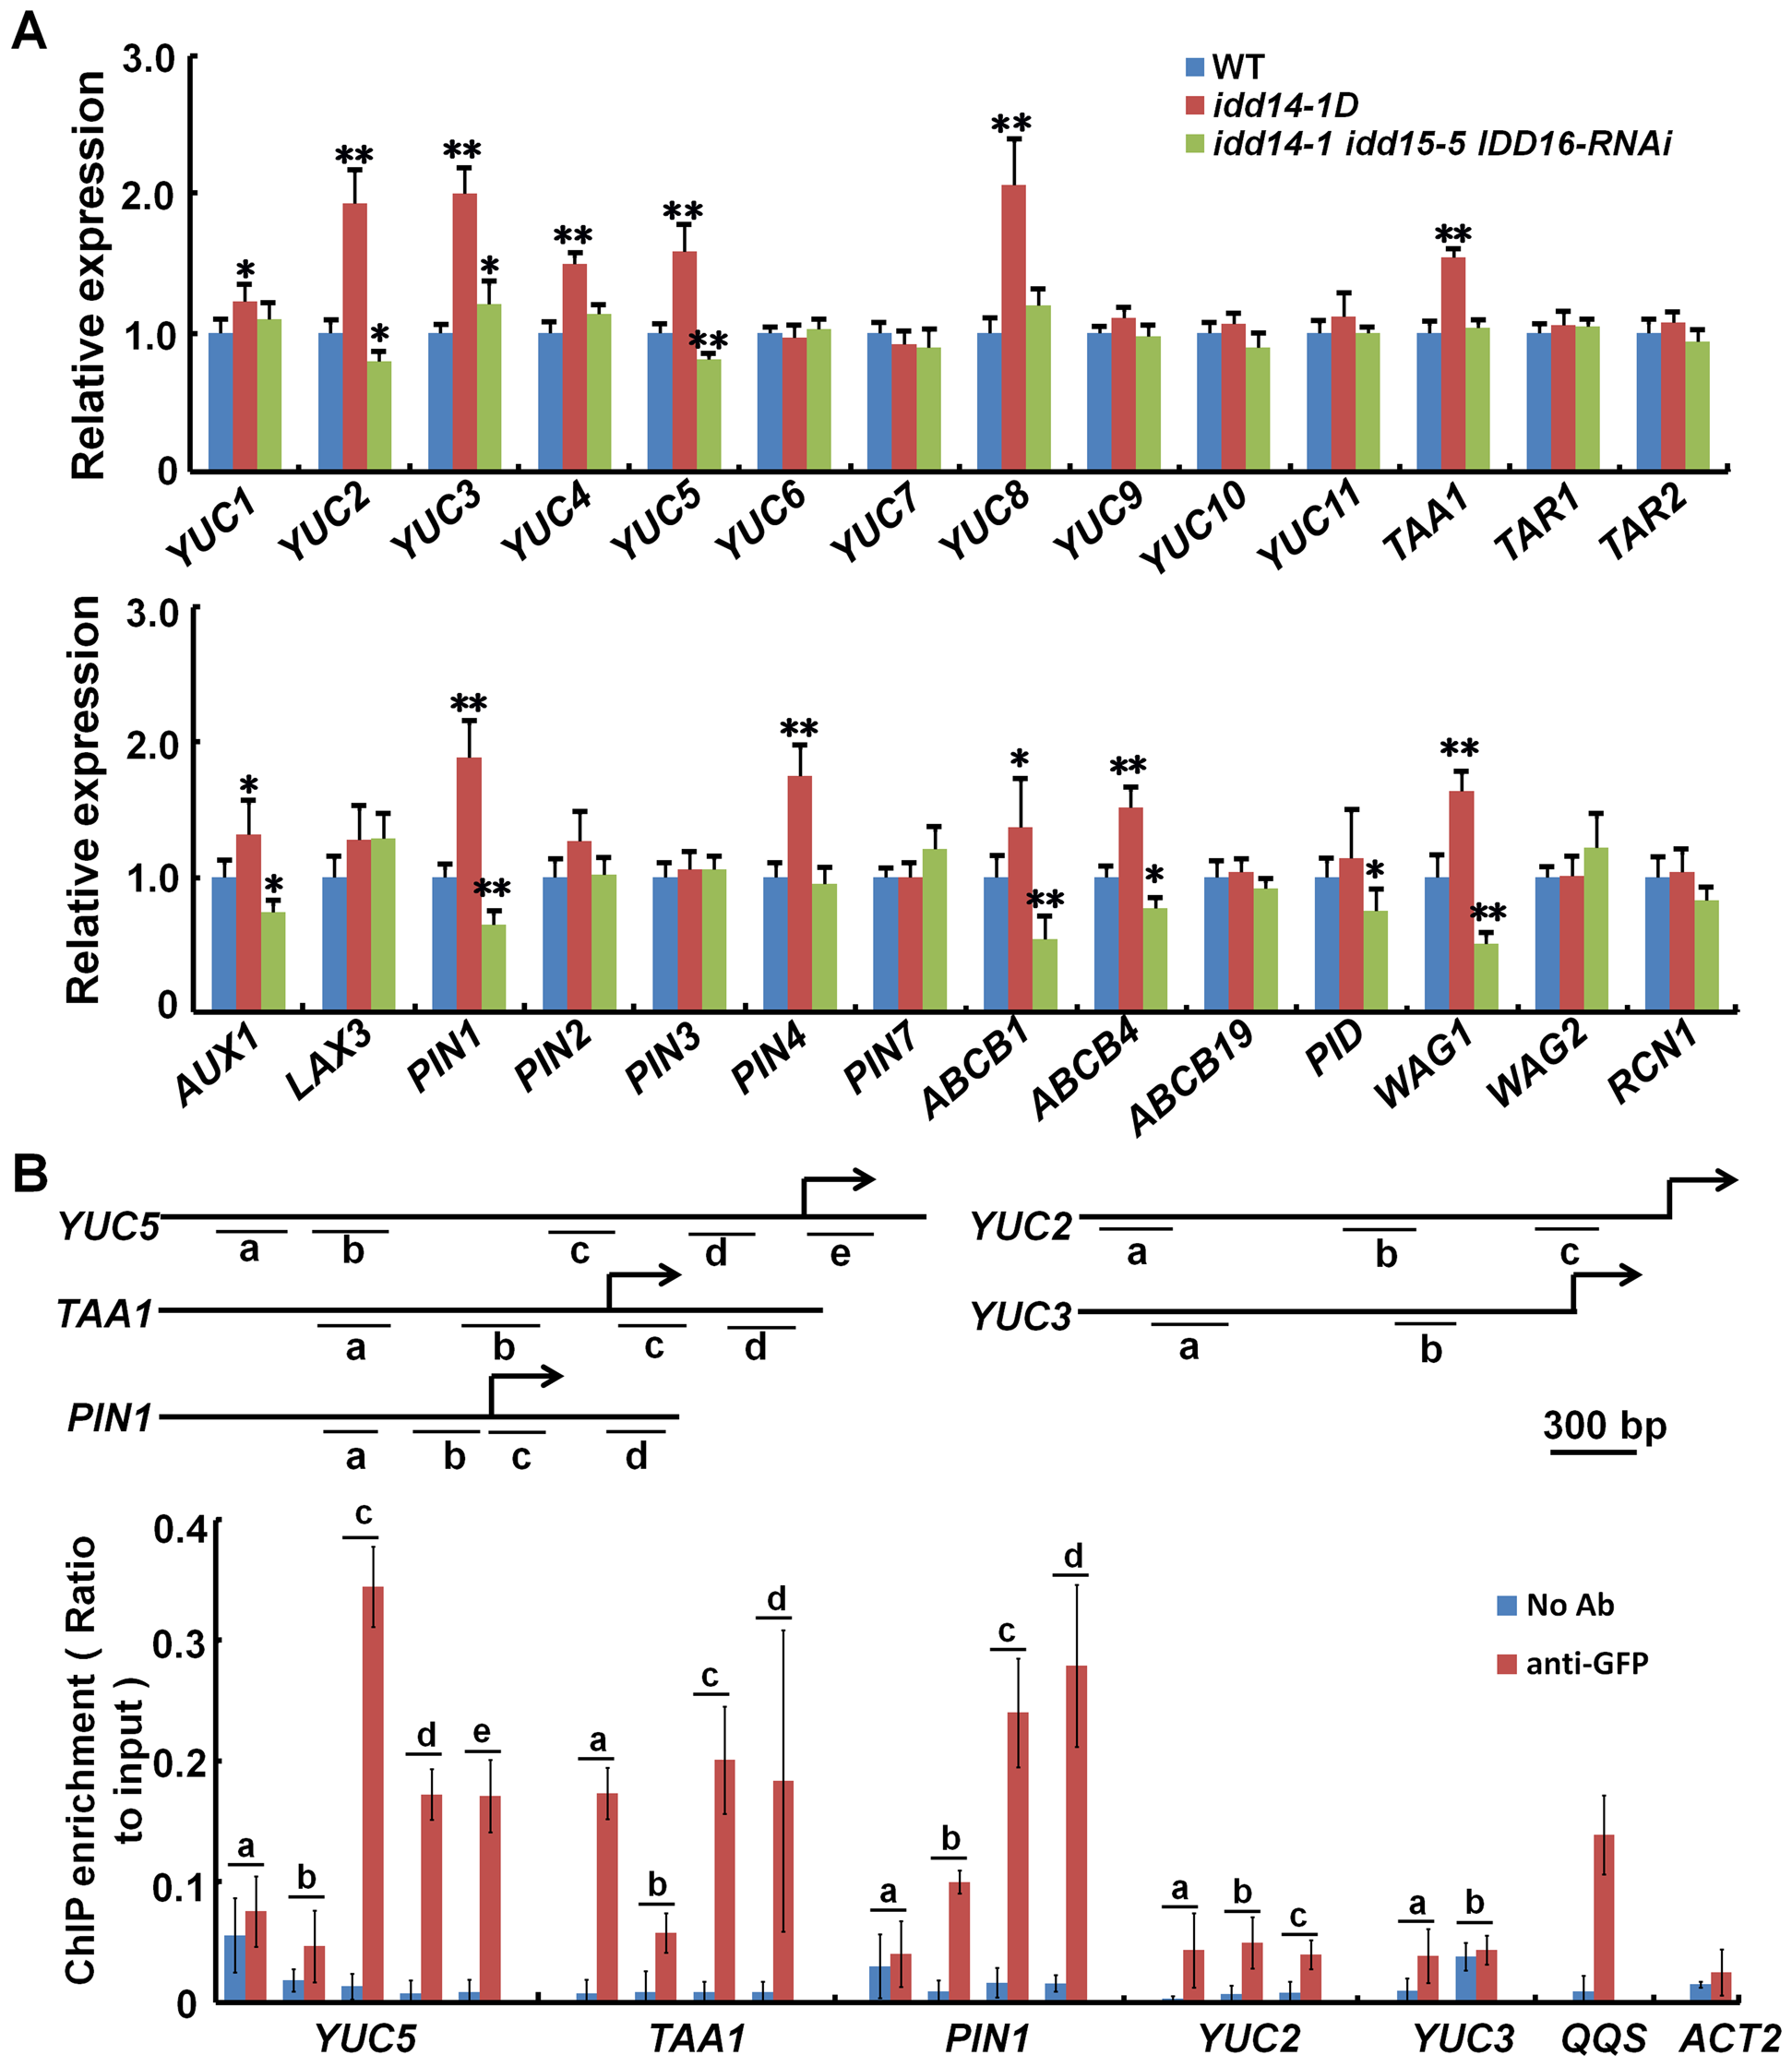 IDD Activates the expression of auxin biosynthetic and transport genes.